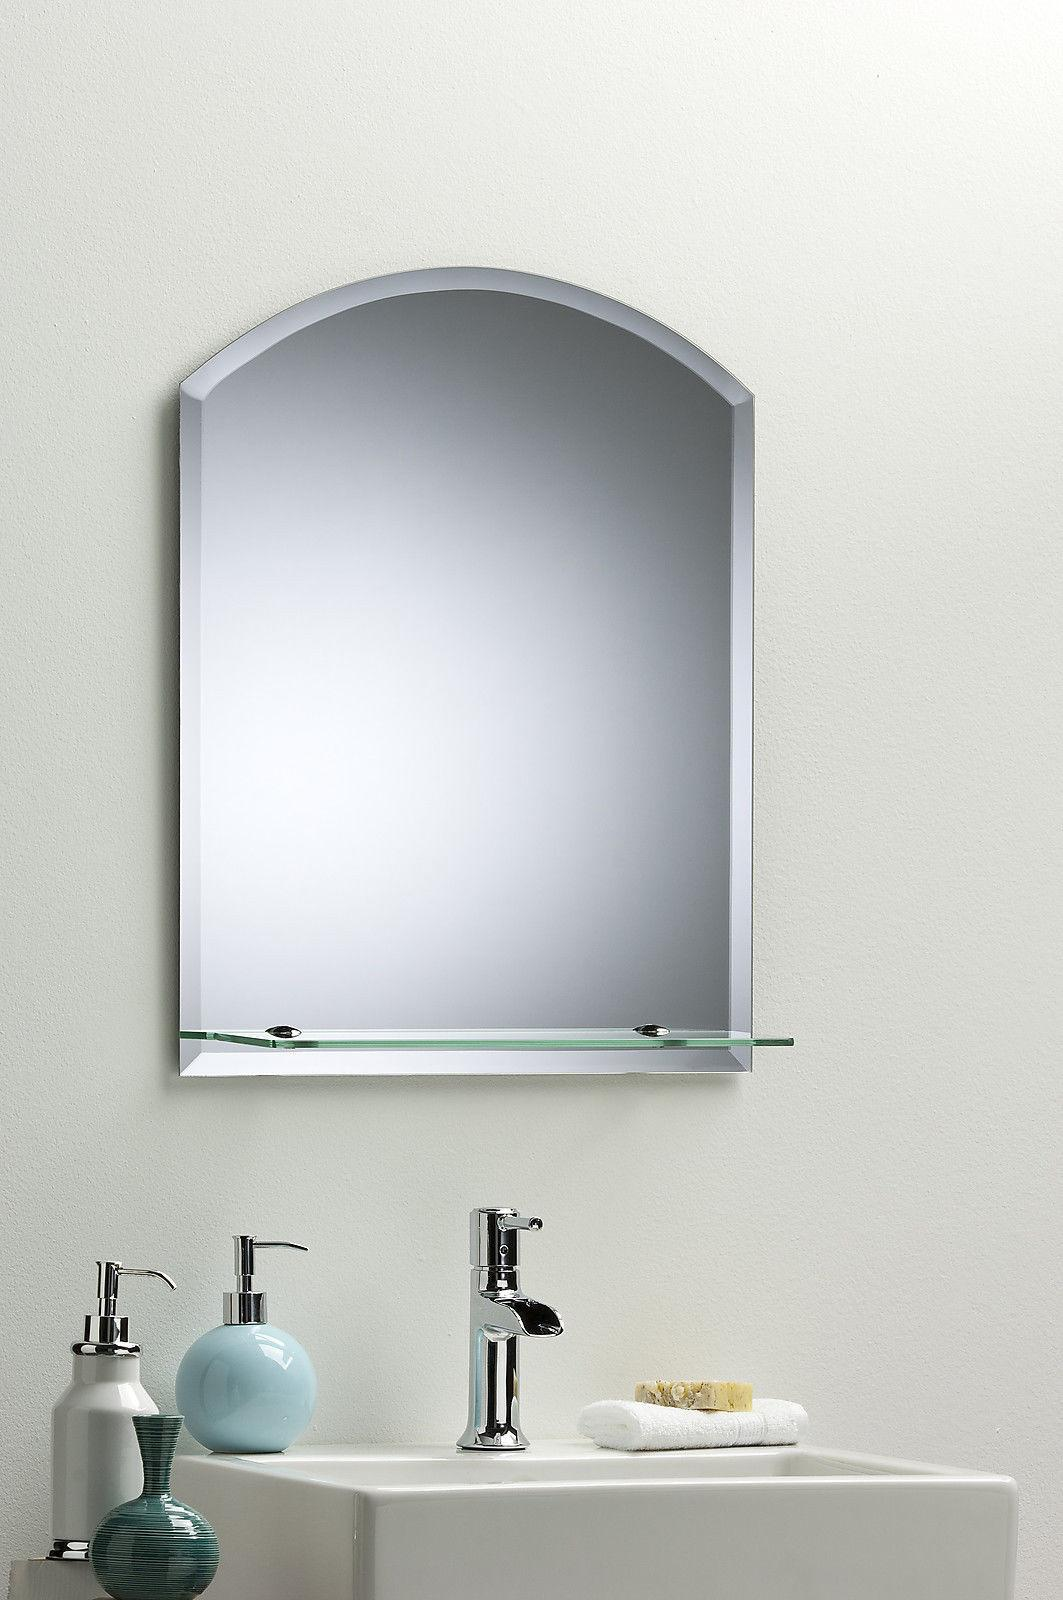 Bathroom Wall Mirror Modern Stylish Arch Shelf